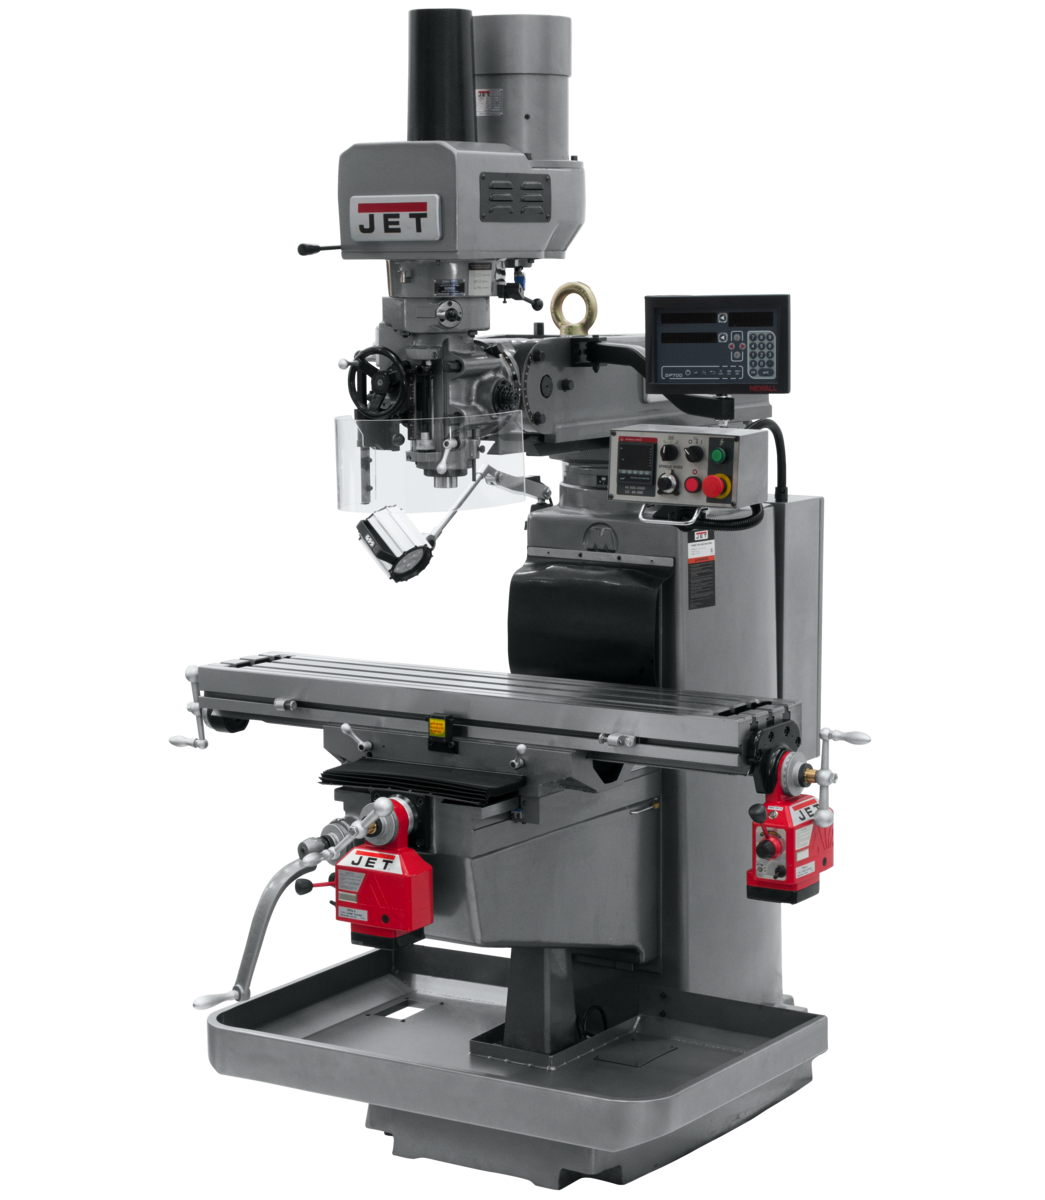 JTM-1050EVS2/230 Mill With Newall DP700 DRO With X and Y-Axis Powerfeeds and Air Powered Drawbar